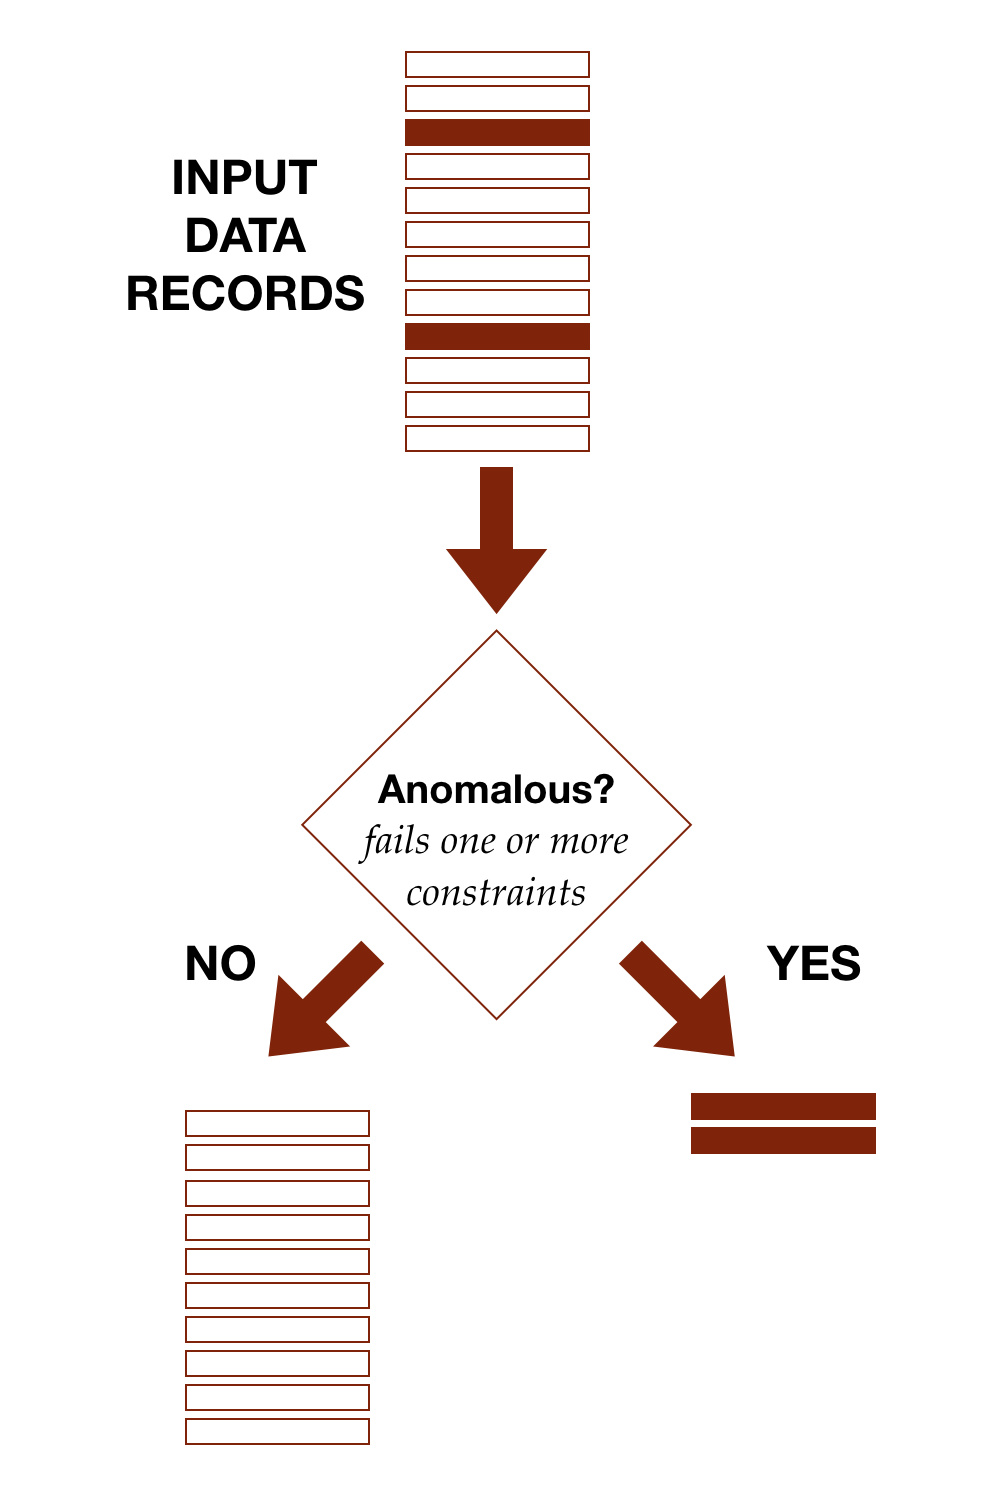 A simple anomaly detection process, splitting input data into anomalous and non-anomalous records